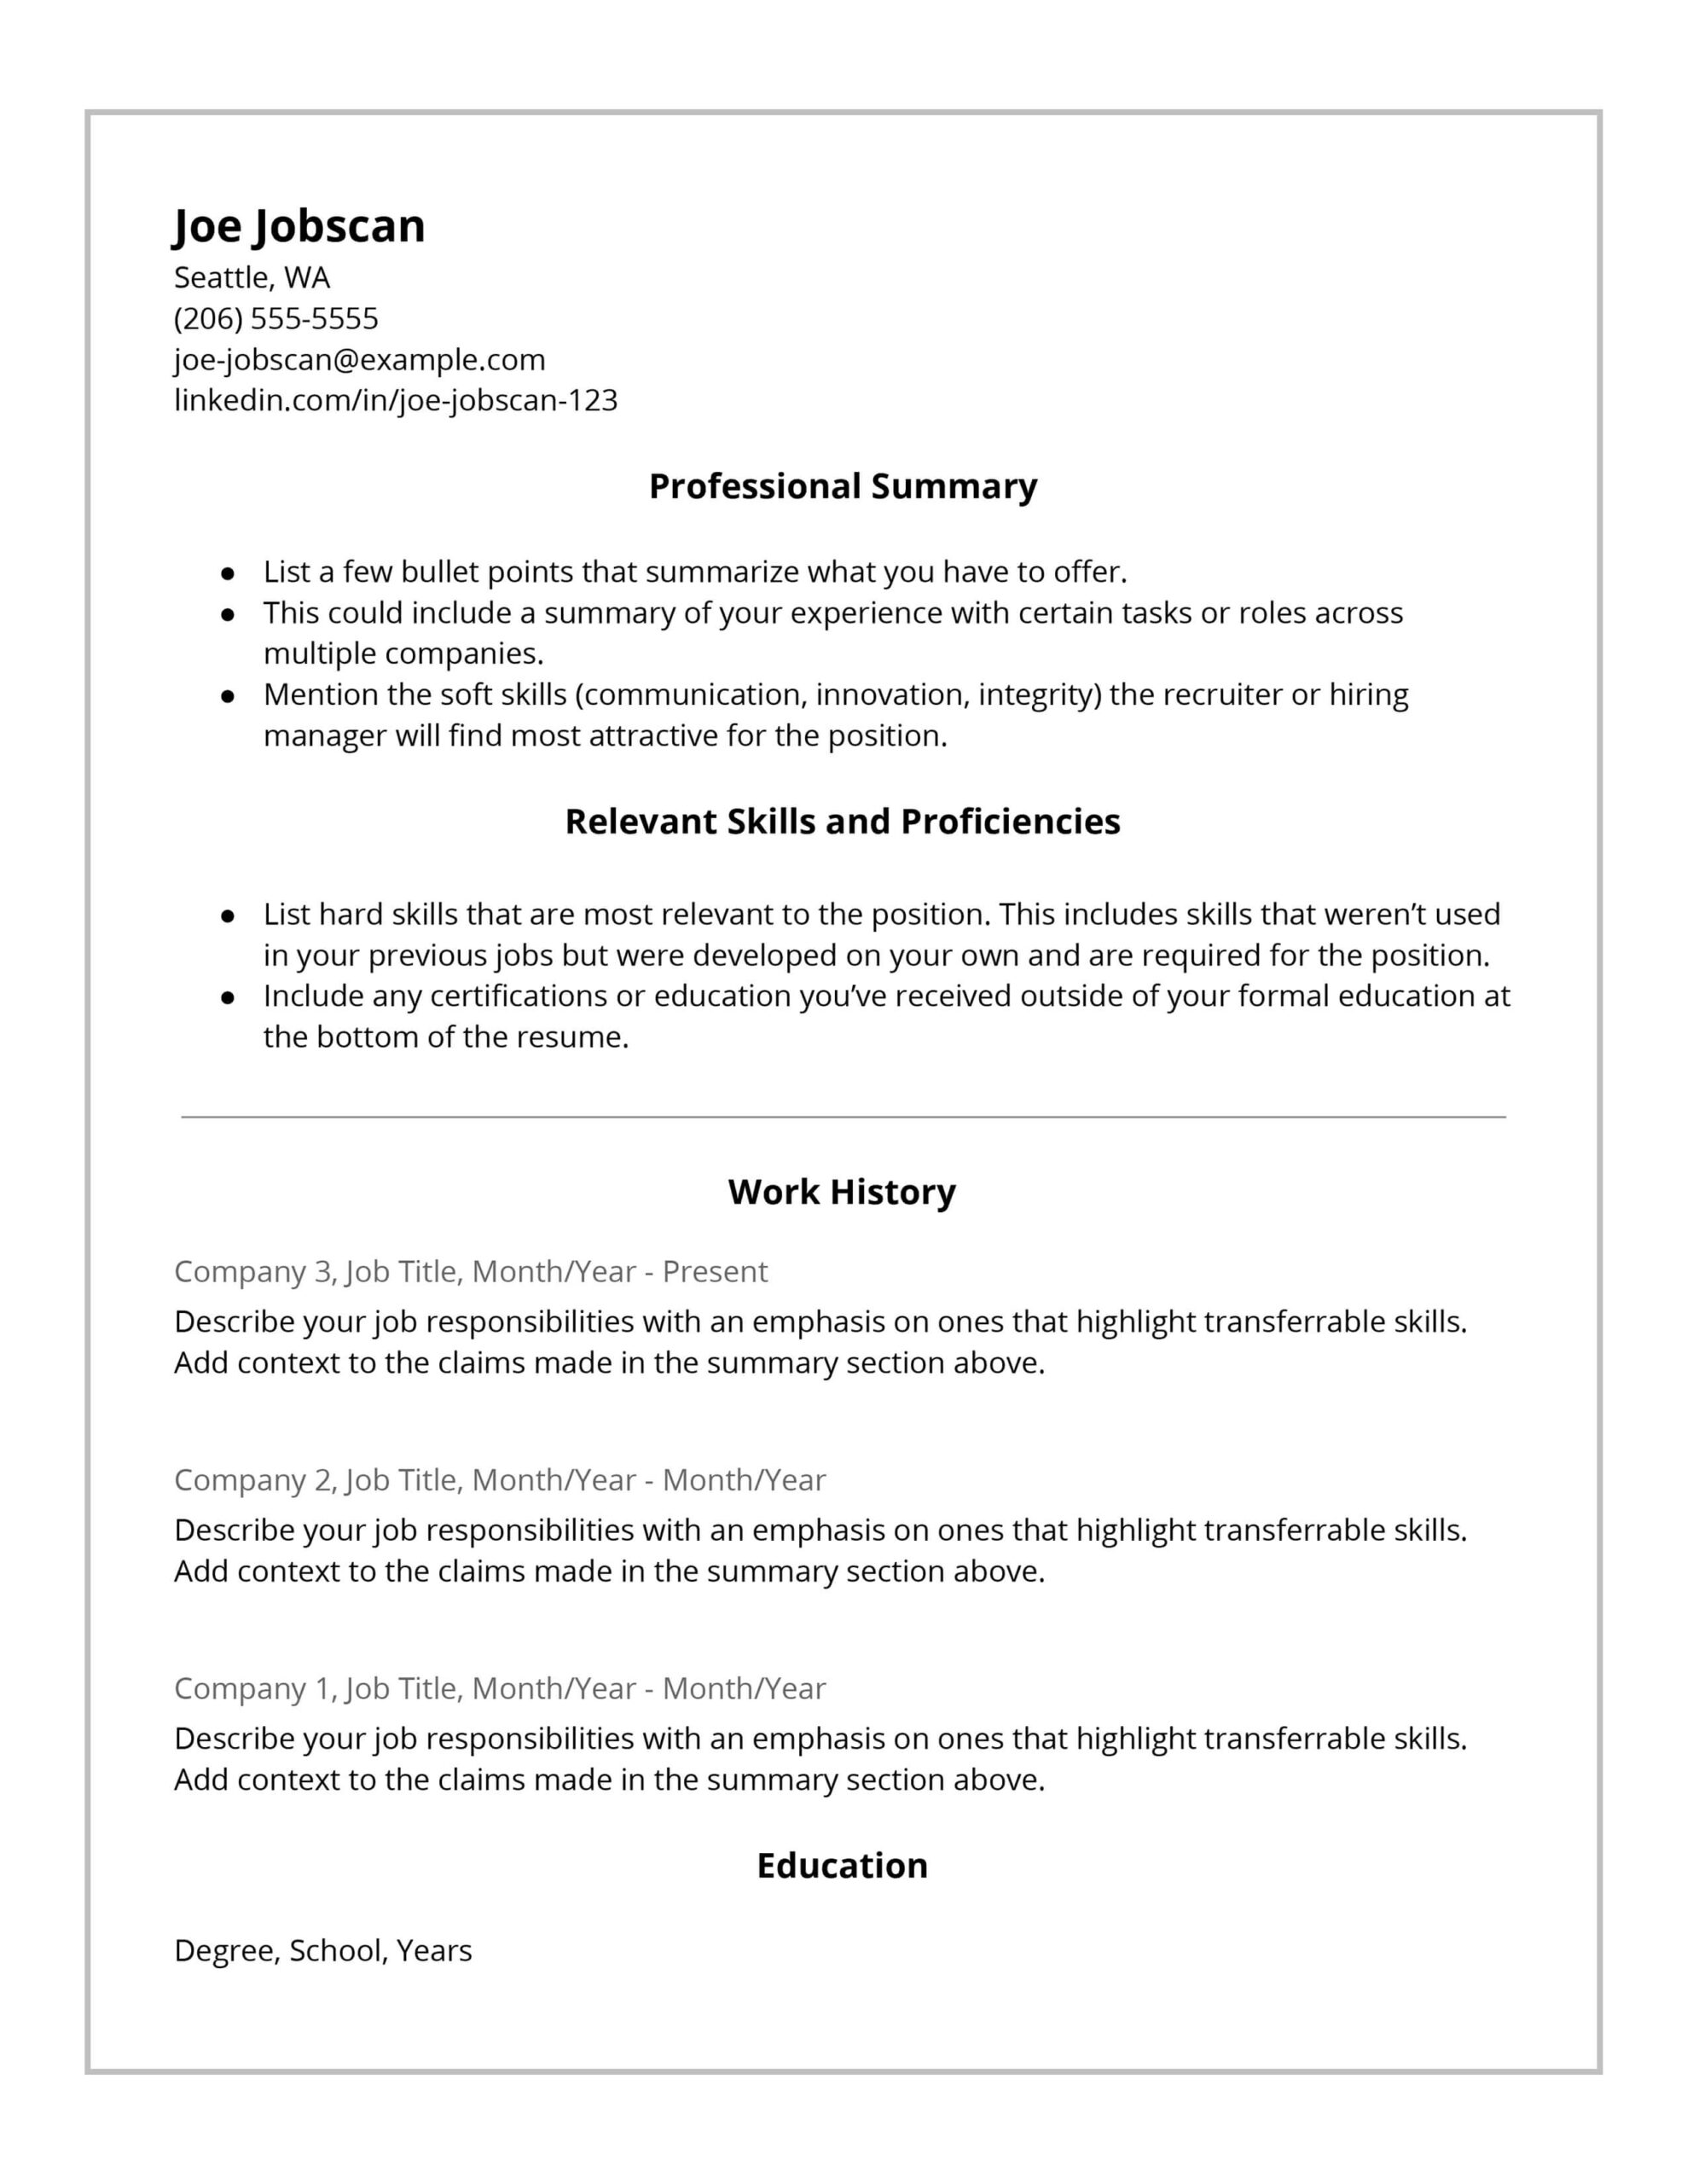 recruiters hate the functional resume format here writing hybrid template strong Resume Writing A Functional Resume